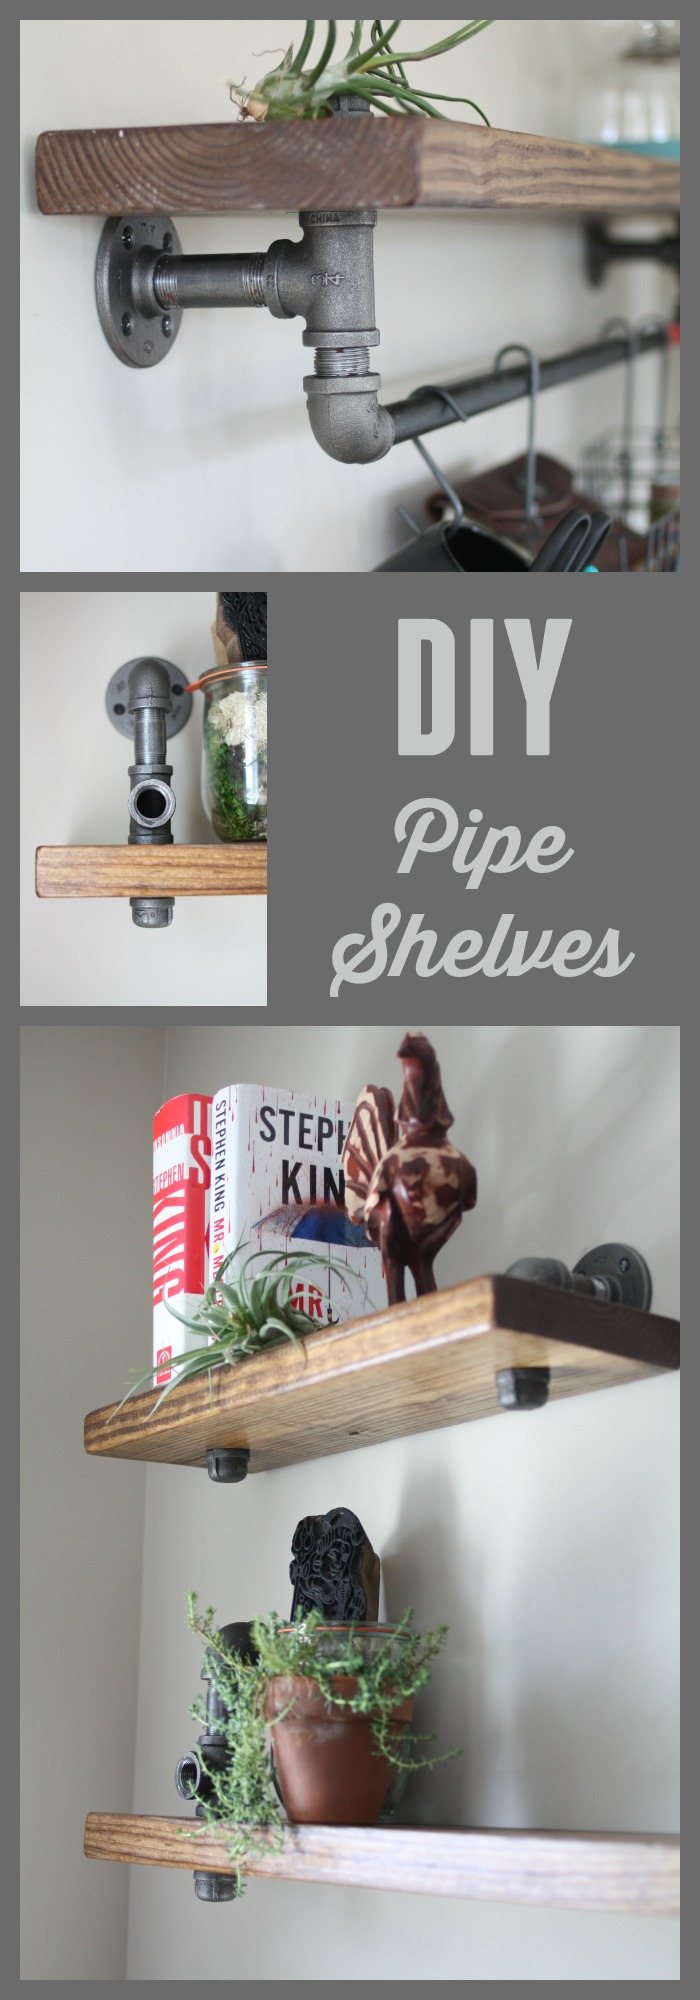 Interesting How To Make Diy Industrial Shelves From Black Iron Industrial Pipe Wood Bookshelves Craft Thyme Pinterest Black Pipe Shelves Black Pipe Shelves houzz 01 Black Pipe Shelves